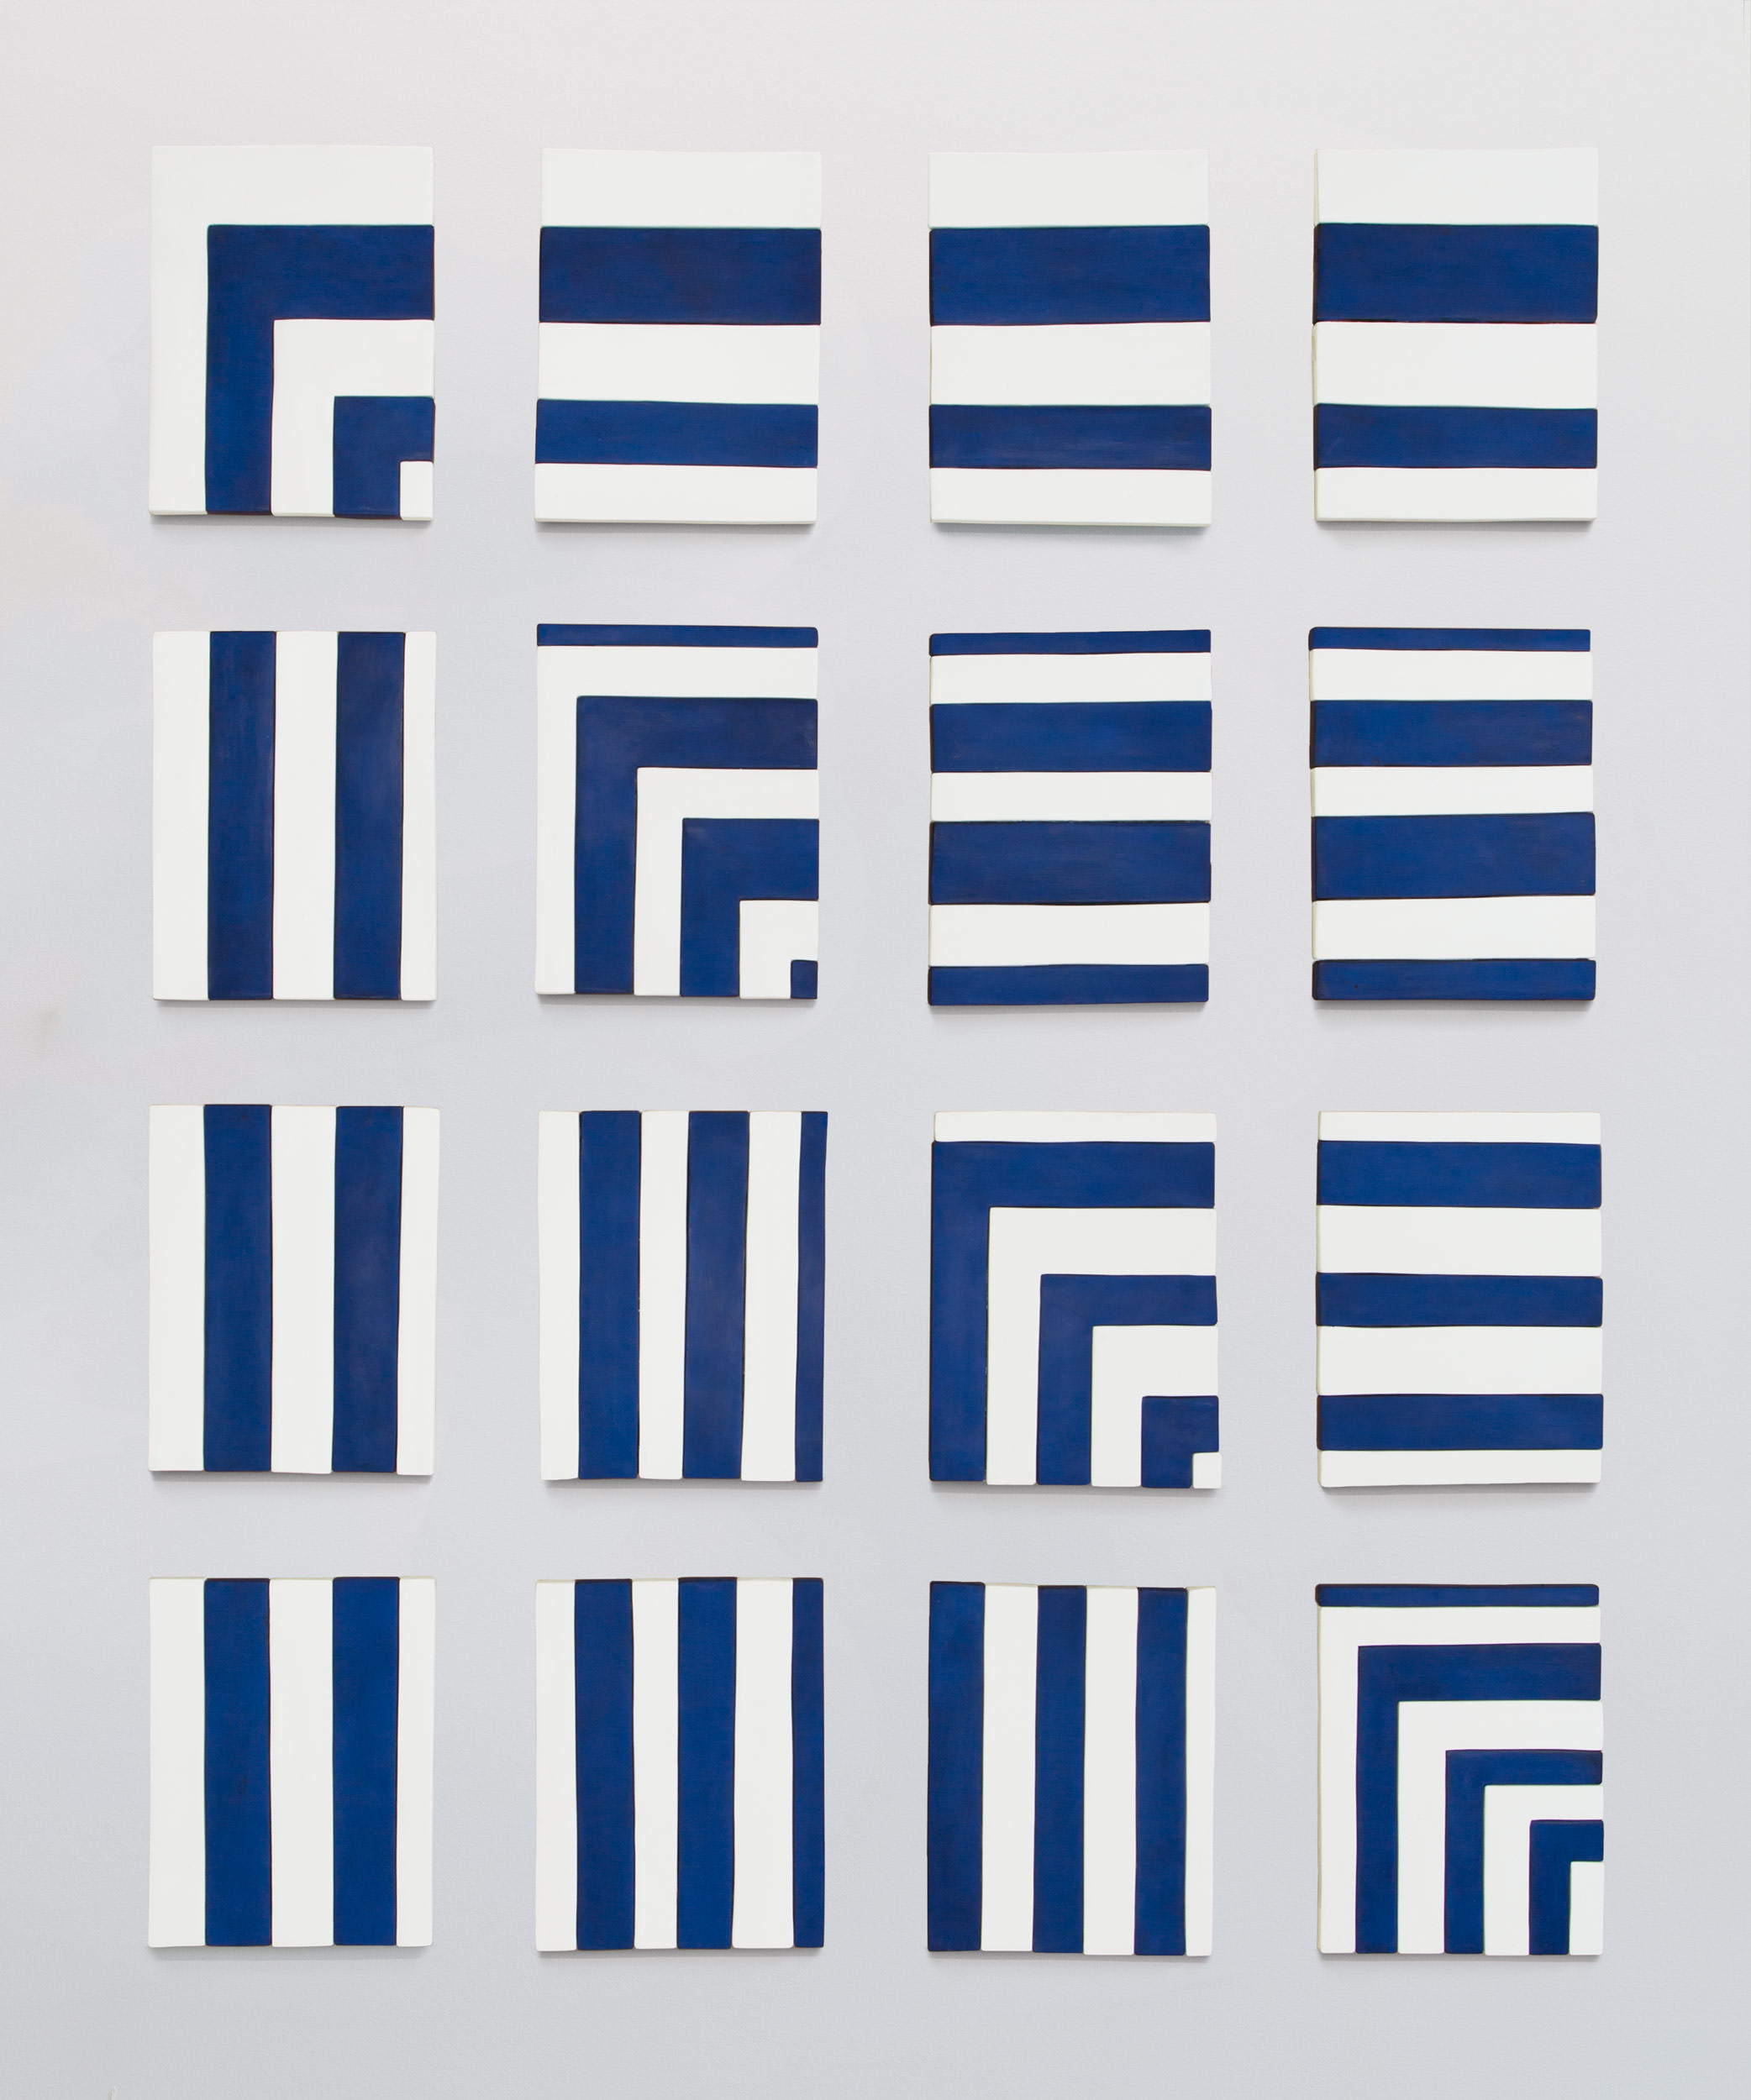 Sadie Benning, Blue and White Painting Sequence, 2013